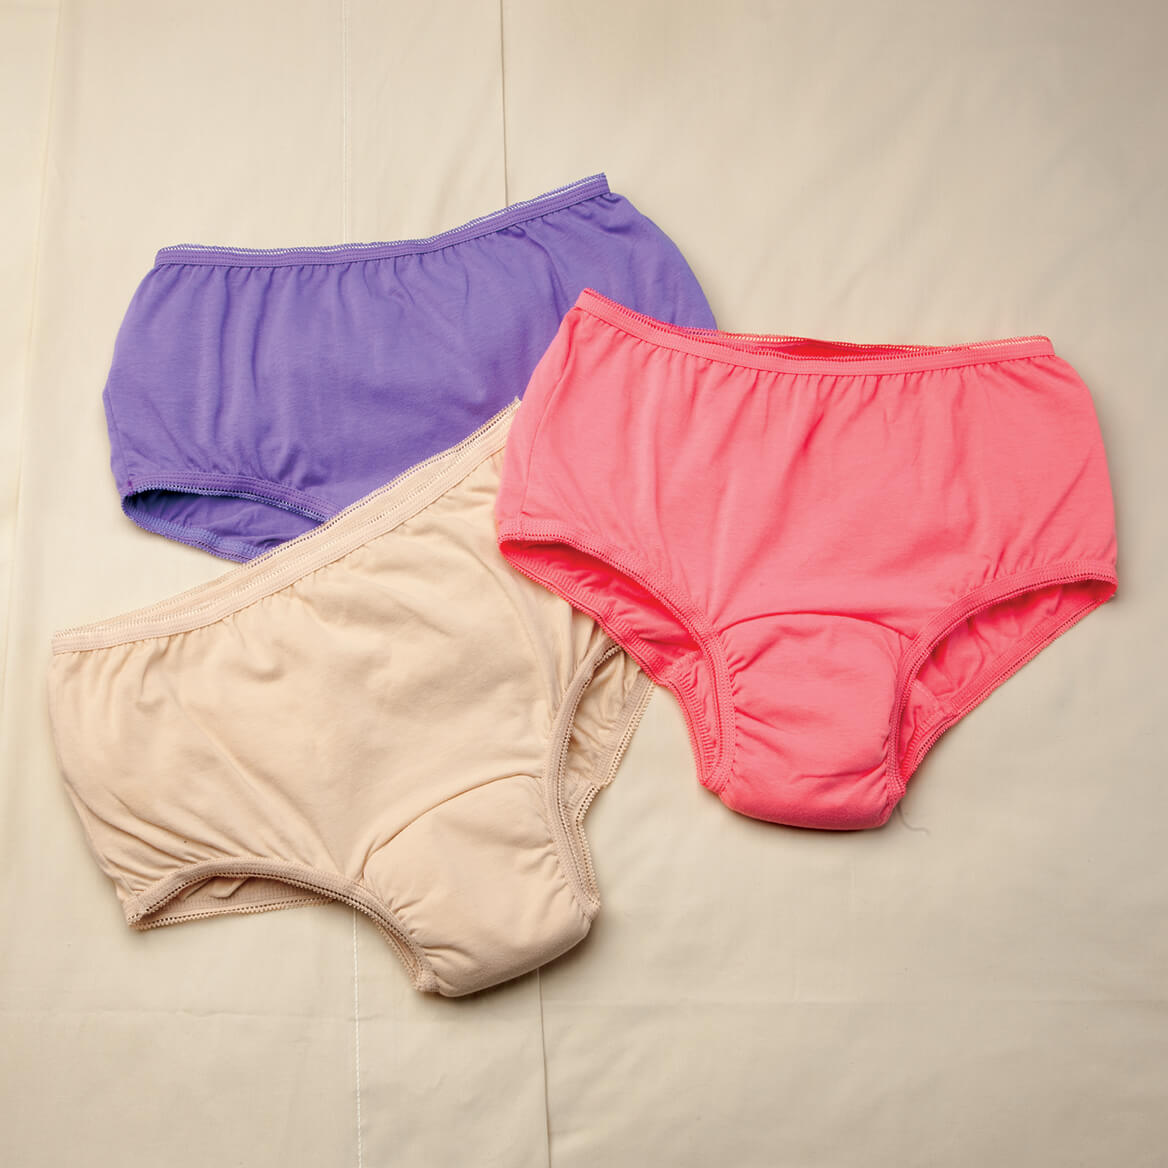 Women's 20 oz. Incontinence Briefs 3 Pack, Assorted Colors-362413